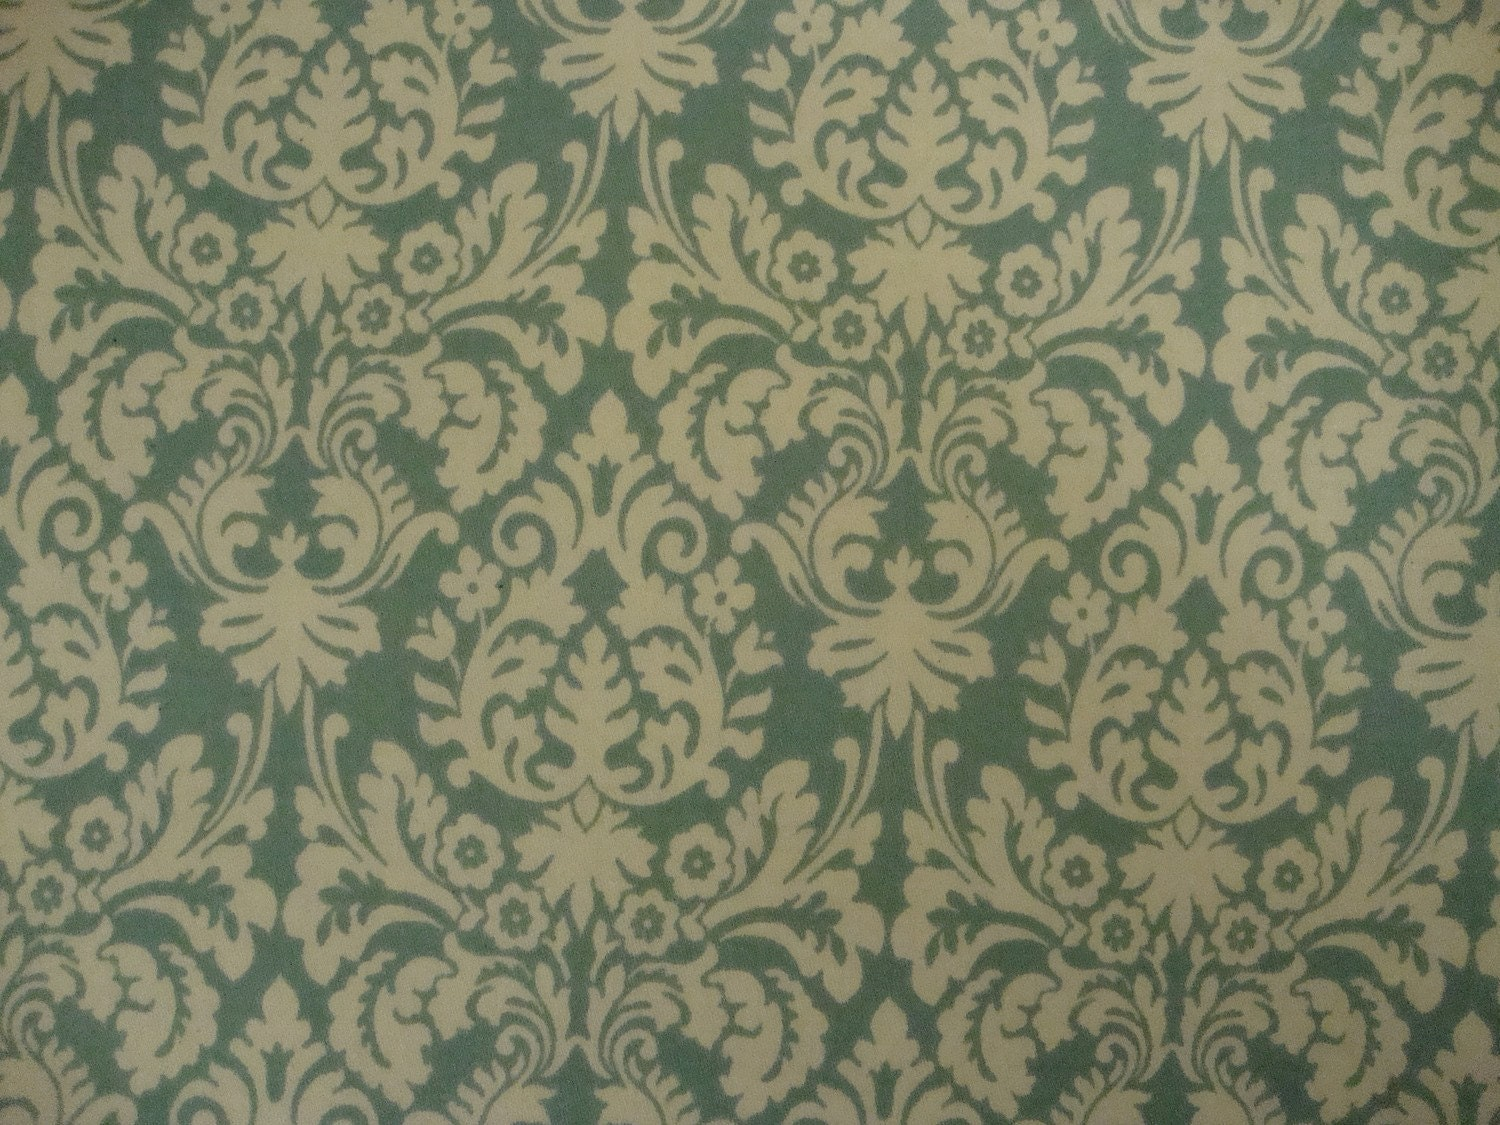 upholstery fabric teal and cream baroque by thedesignerstouch